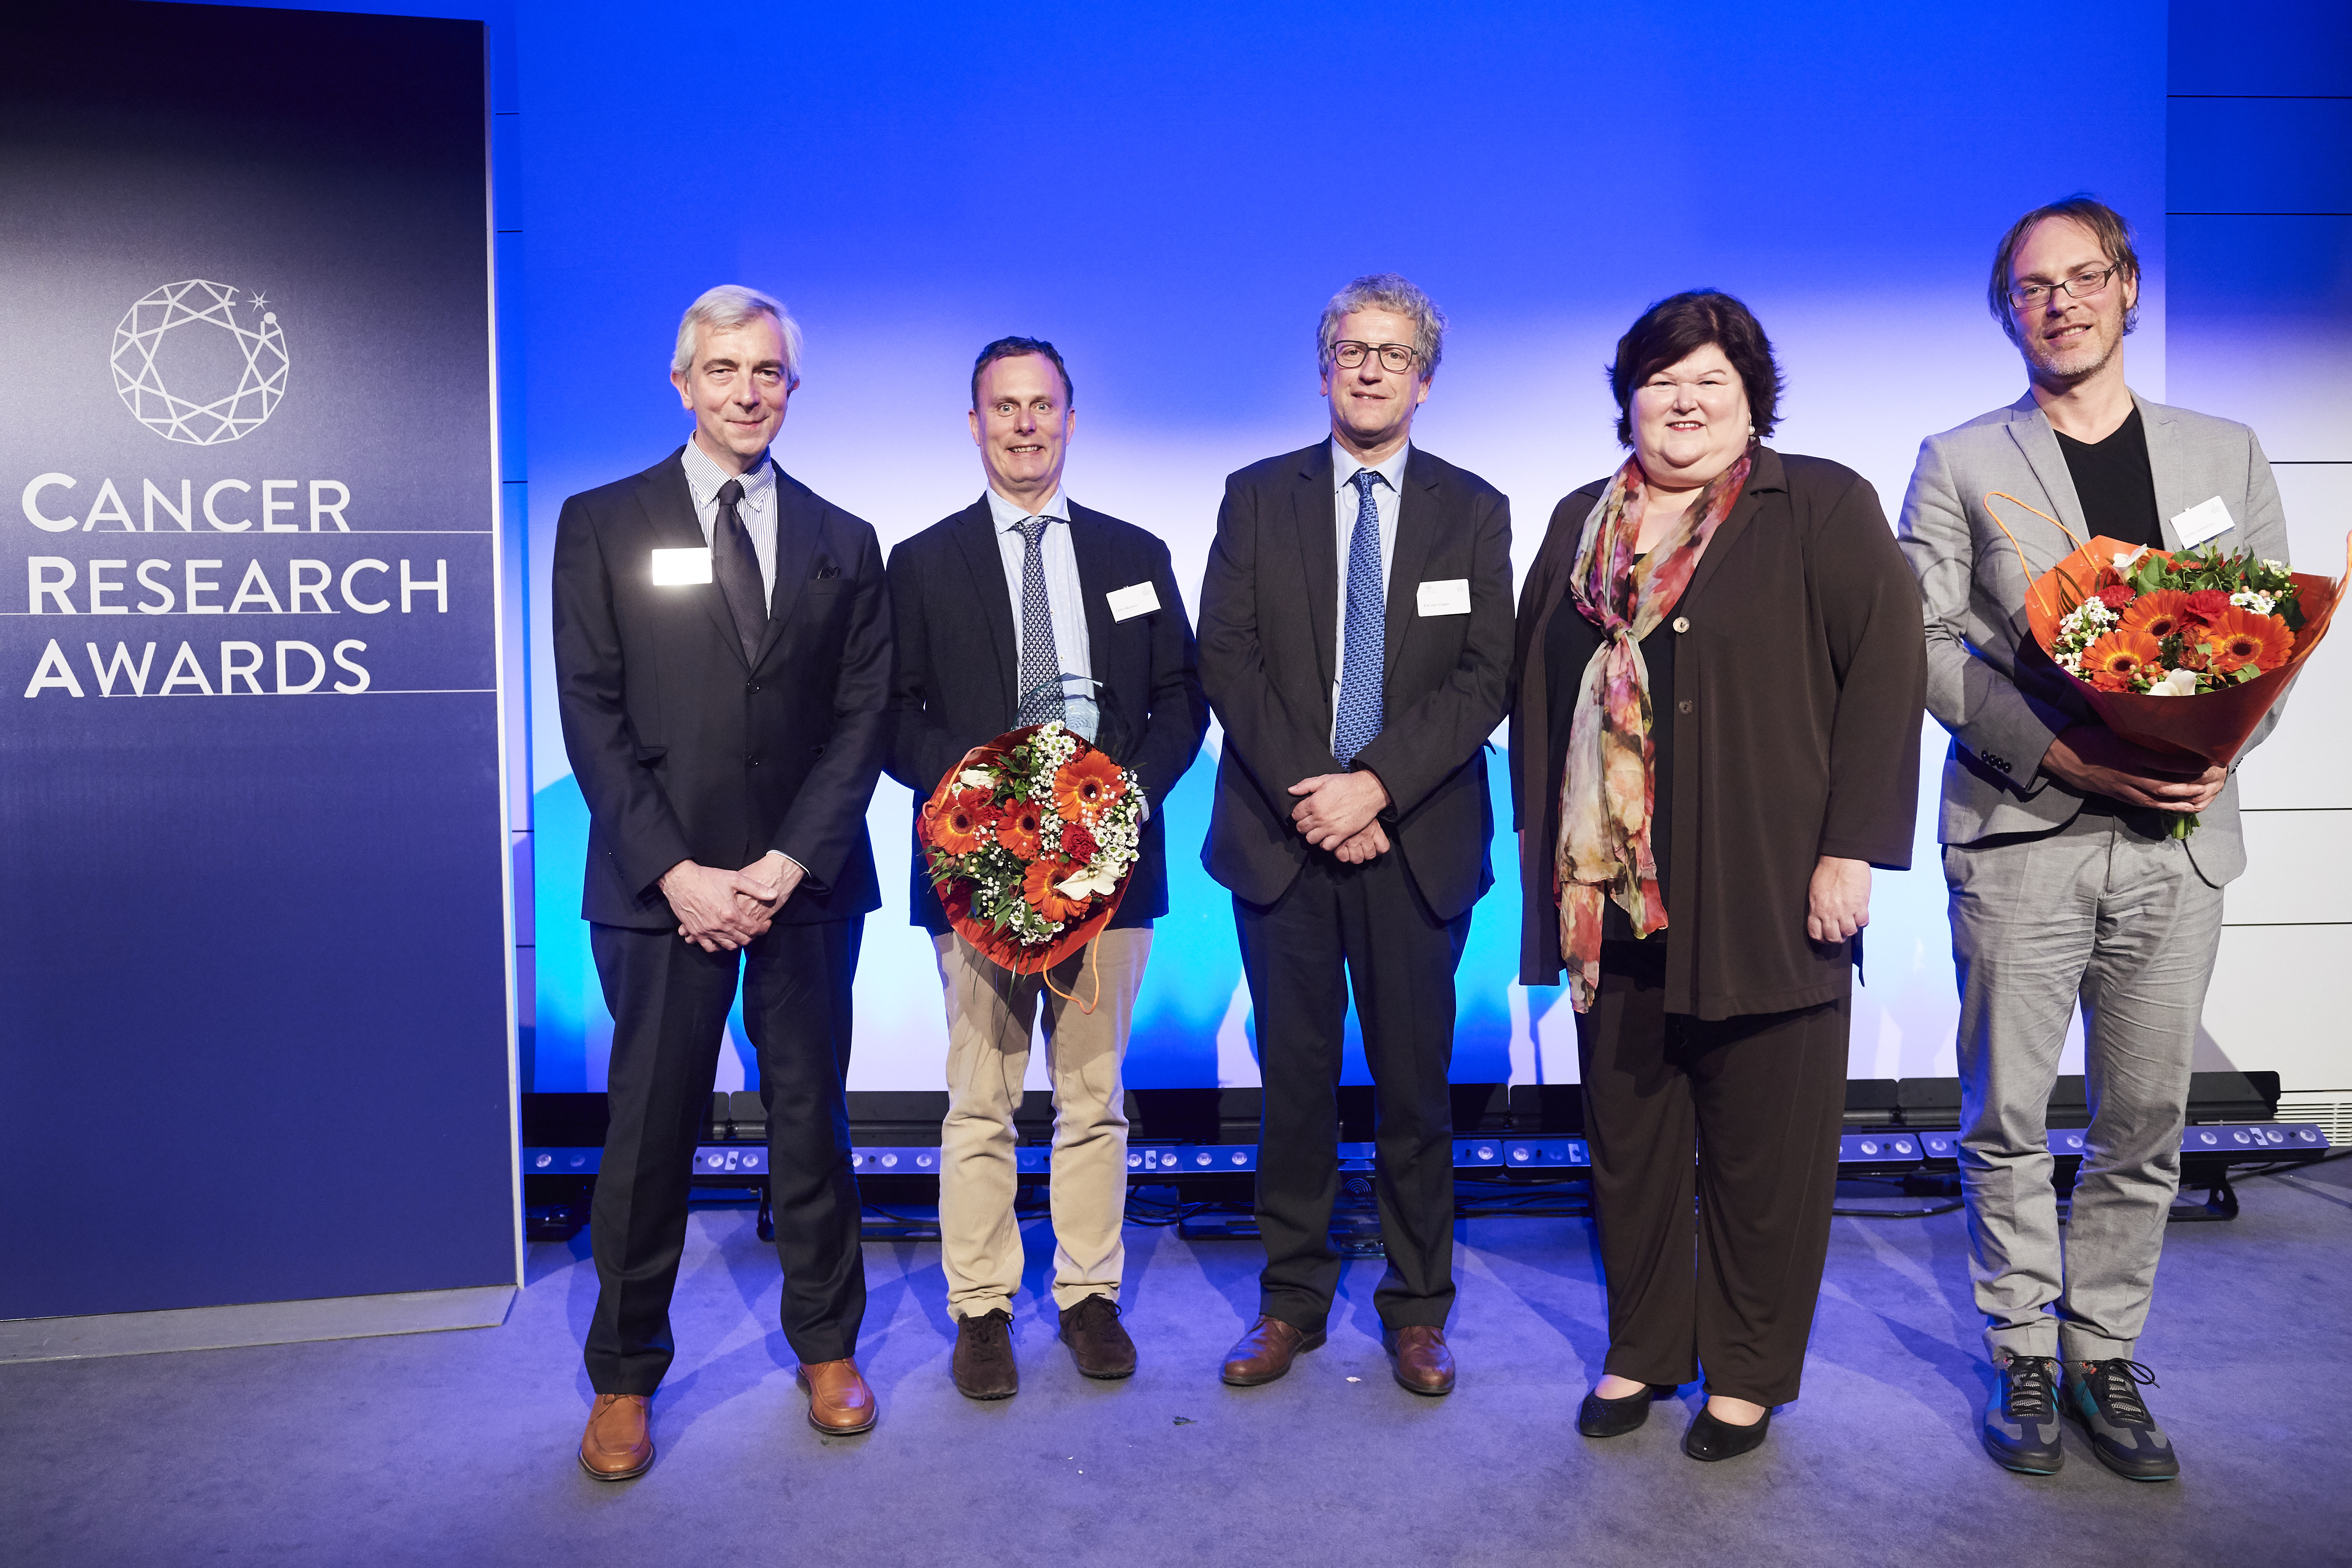 Cancer_Research_Awards